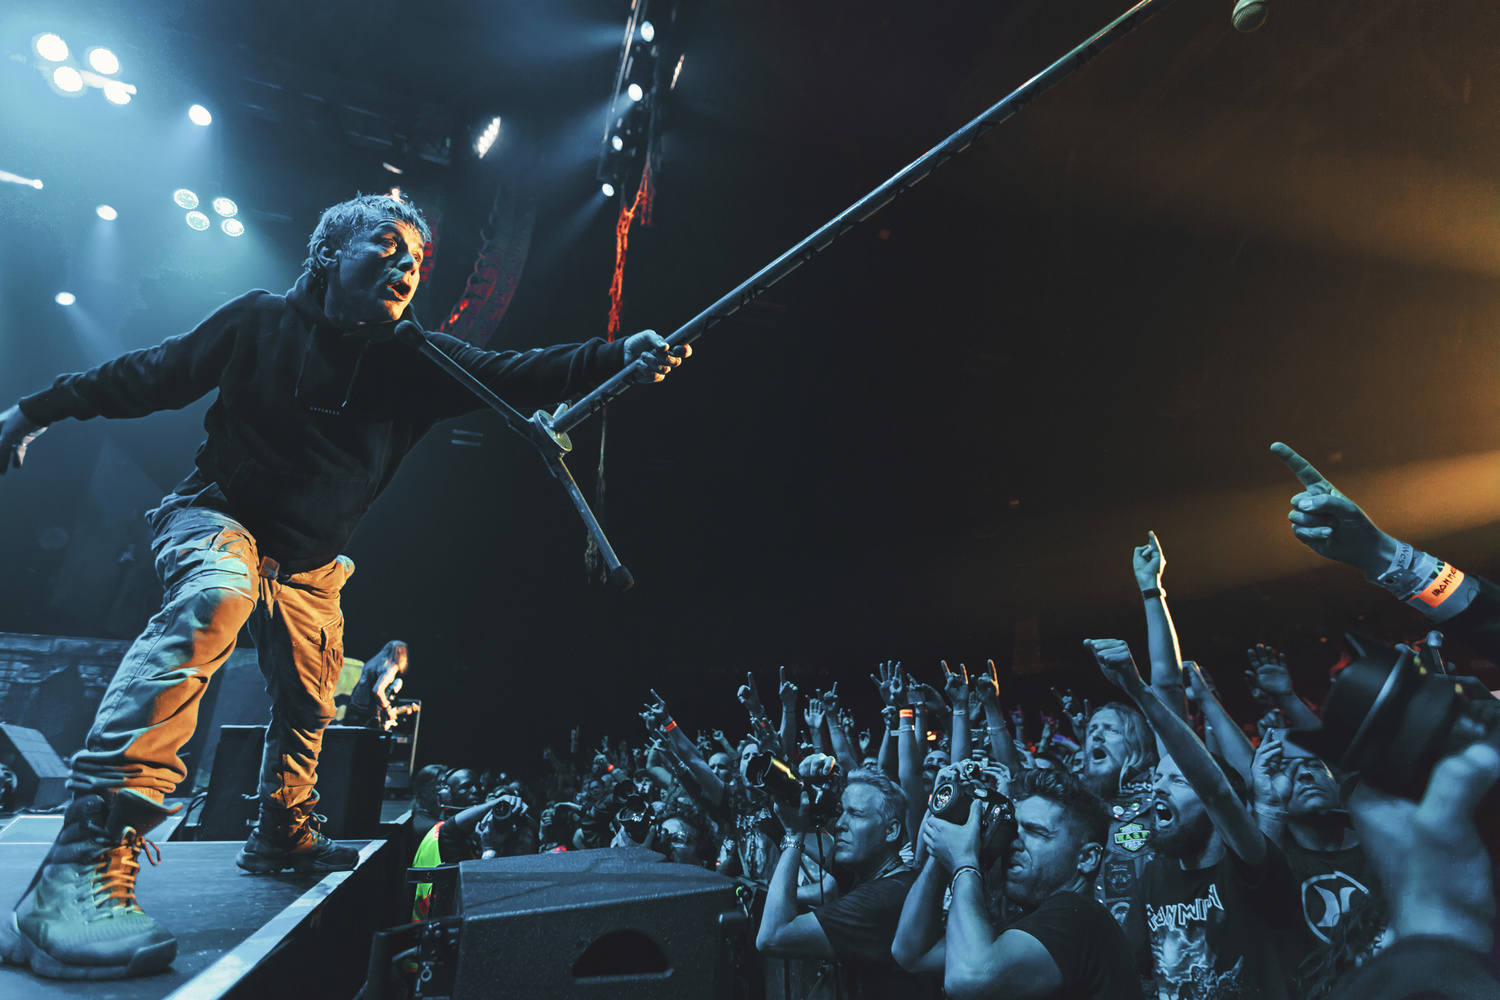 Iron Maiden captured by The Image Engineer, Live in Cape Town